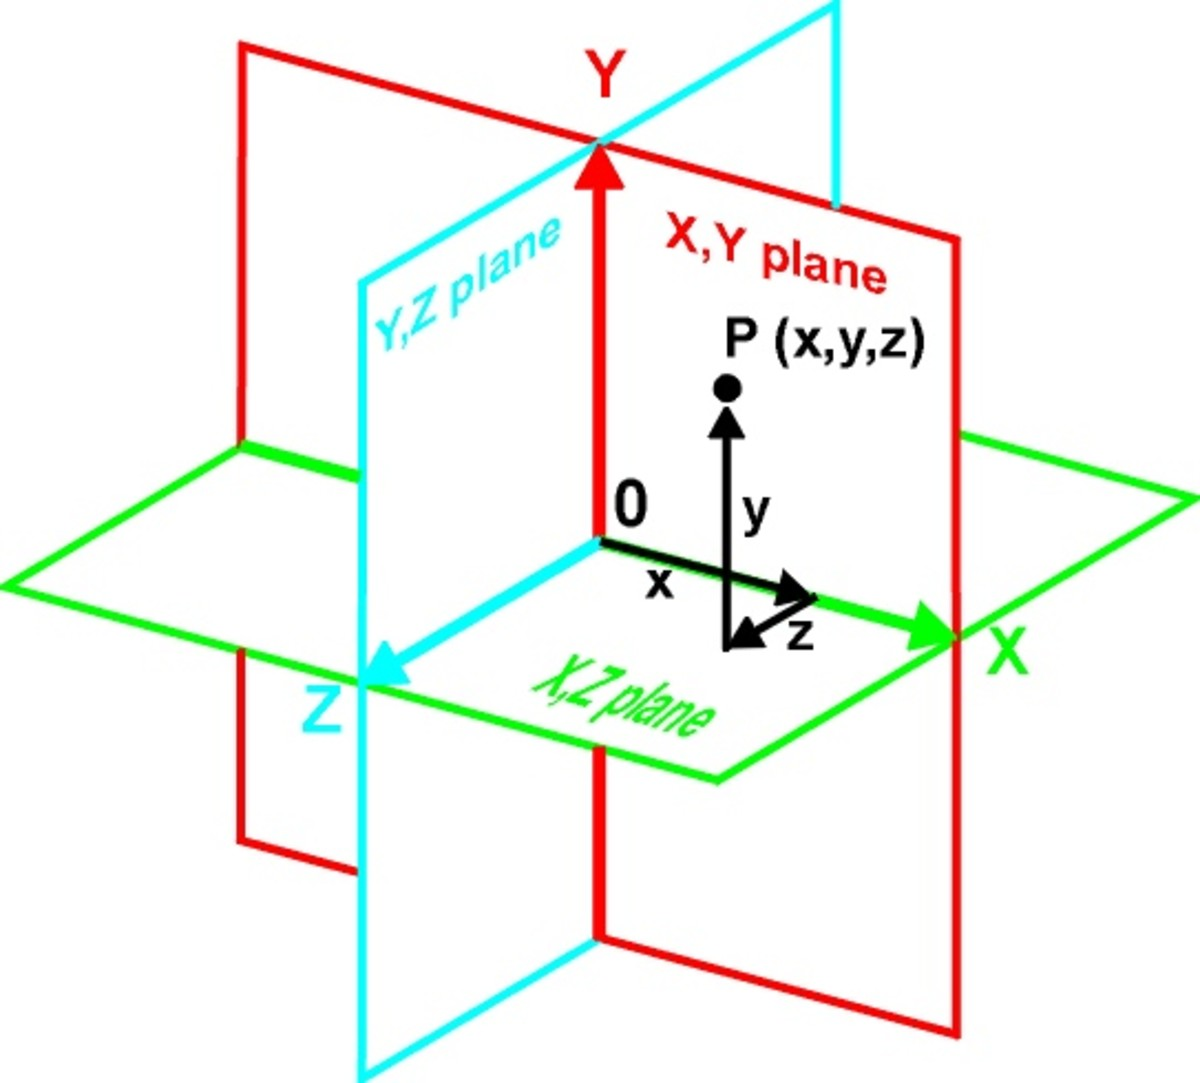 Fig. 5 shows the 3 planes that portray 3-D space.